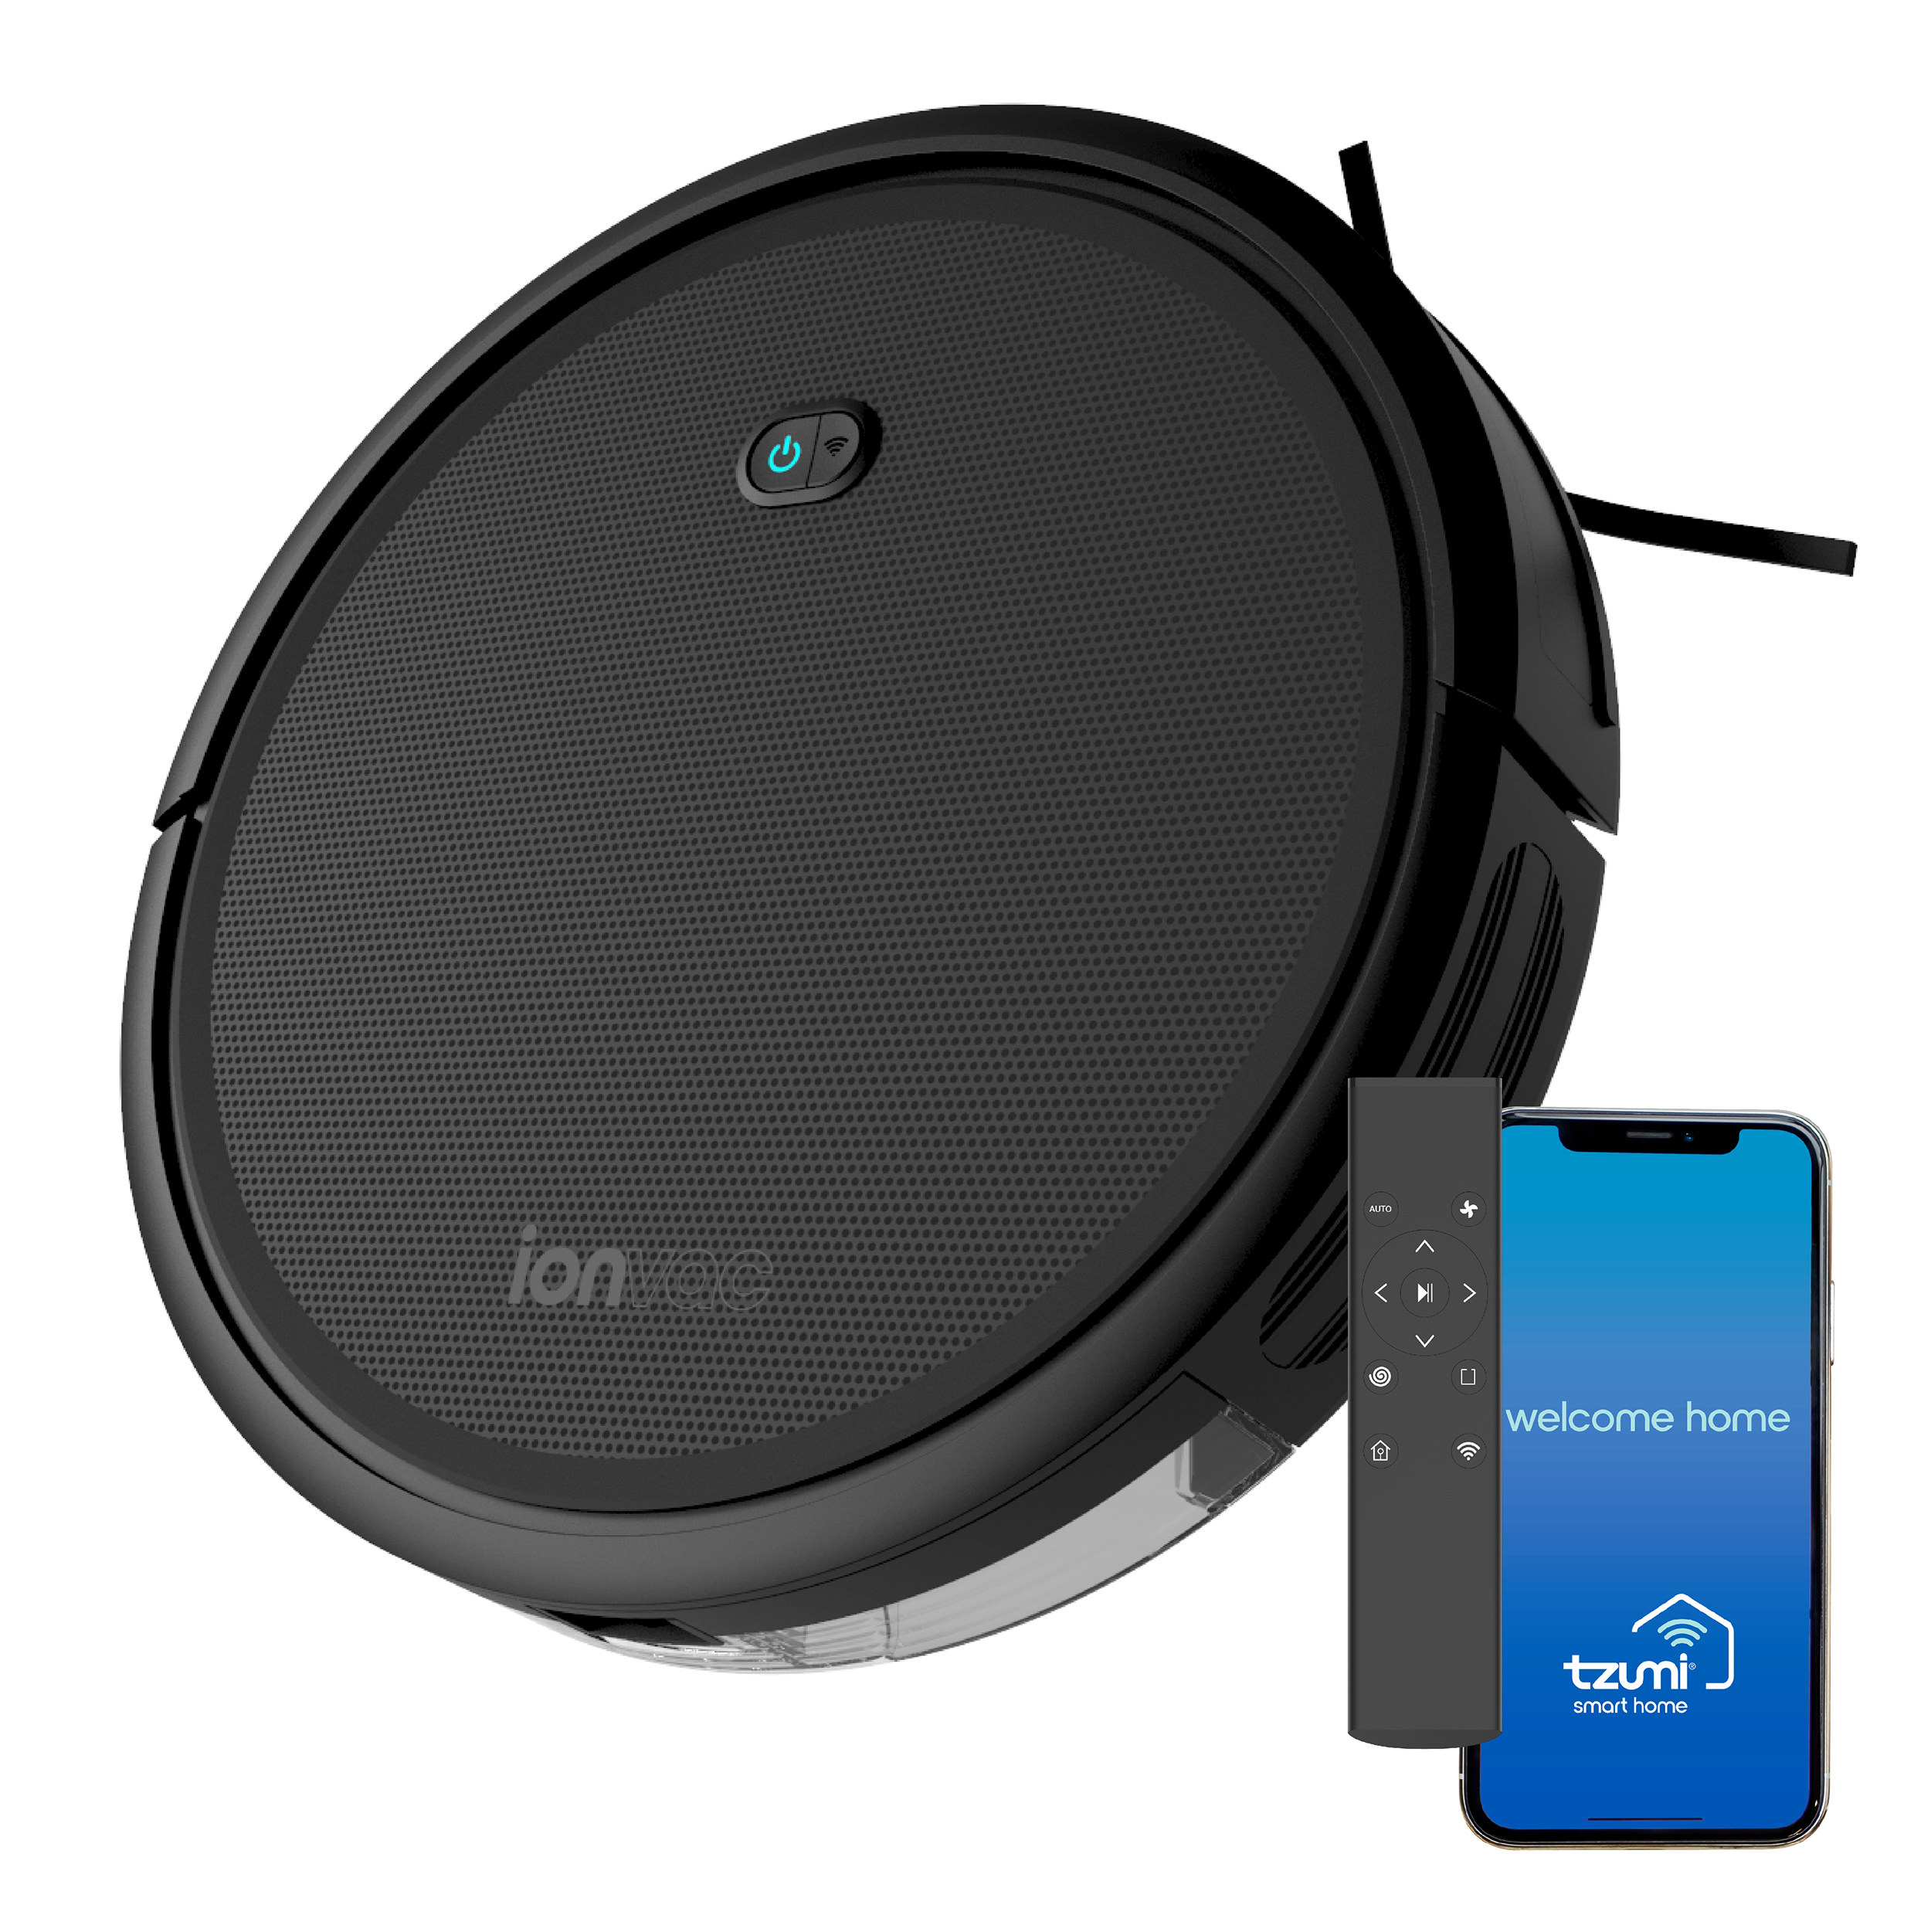 A black ionvac robot vacuum with remote and app on phone